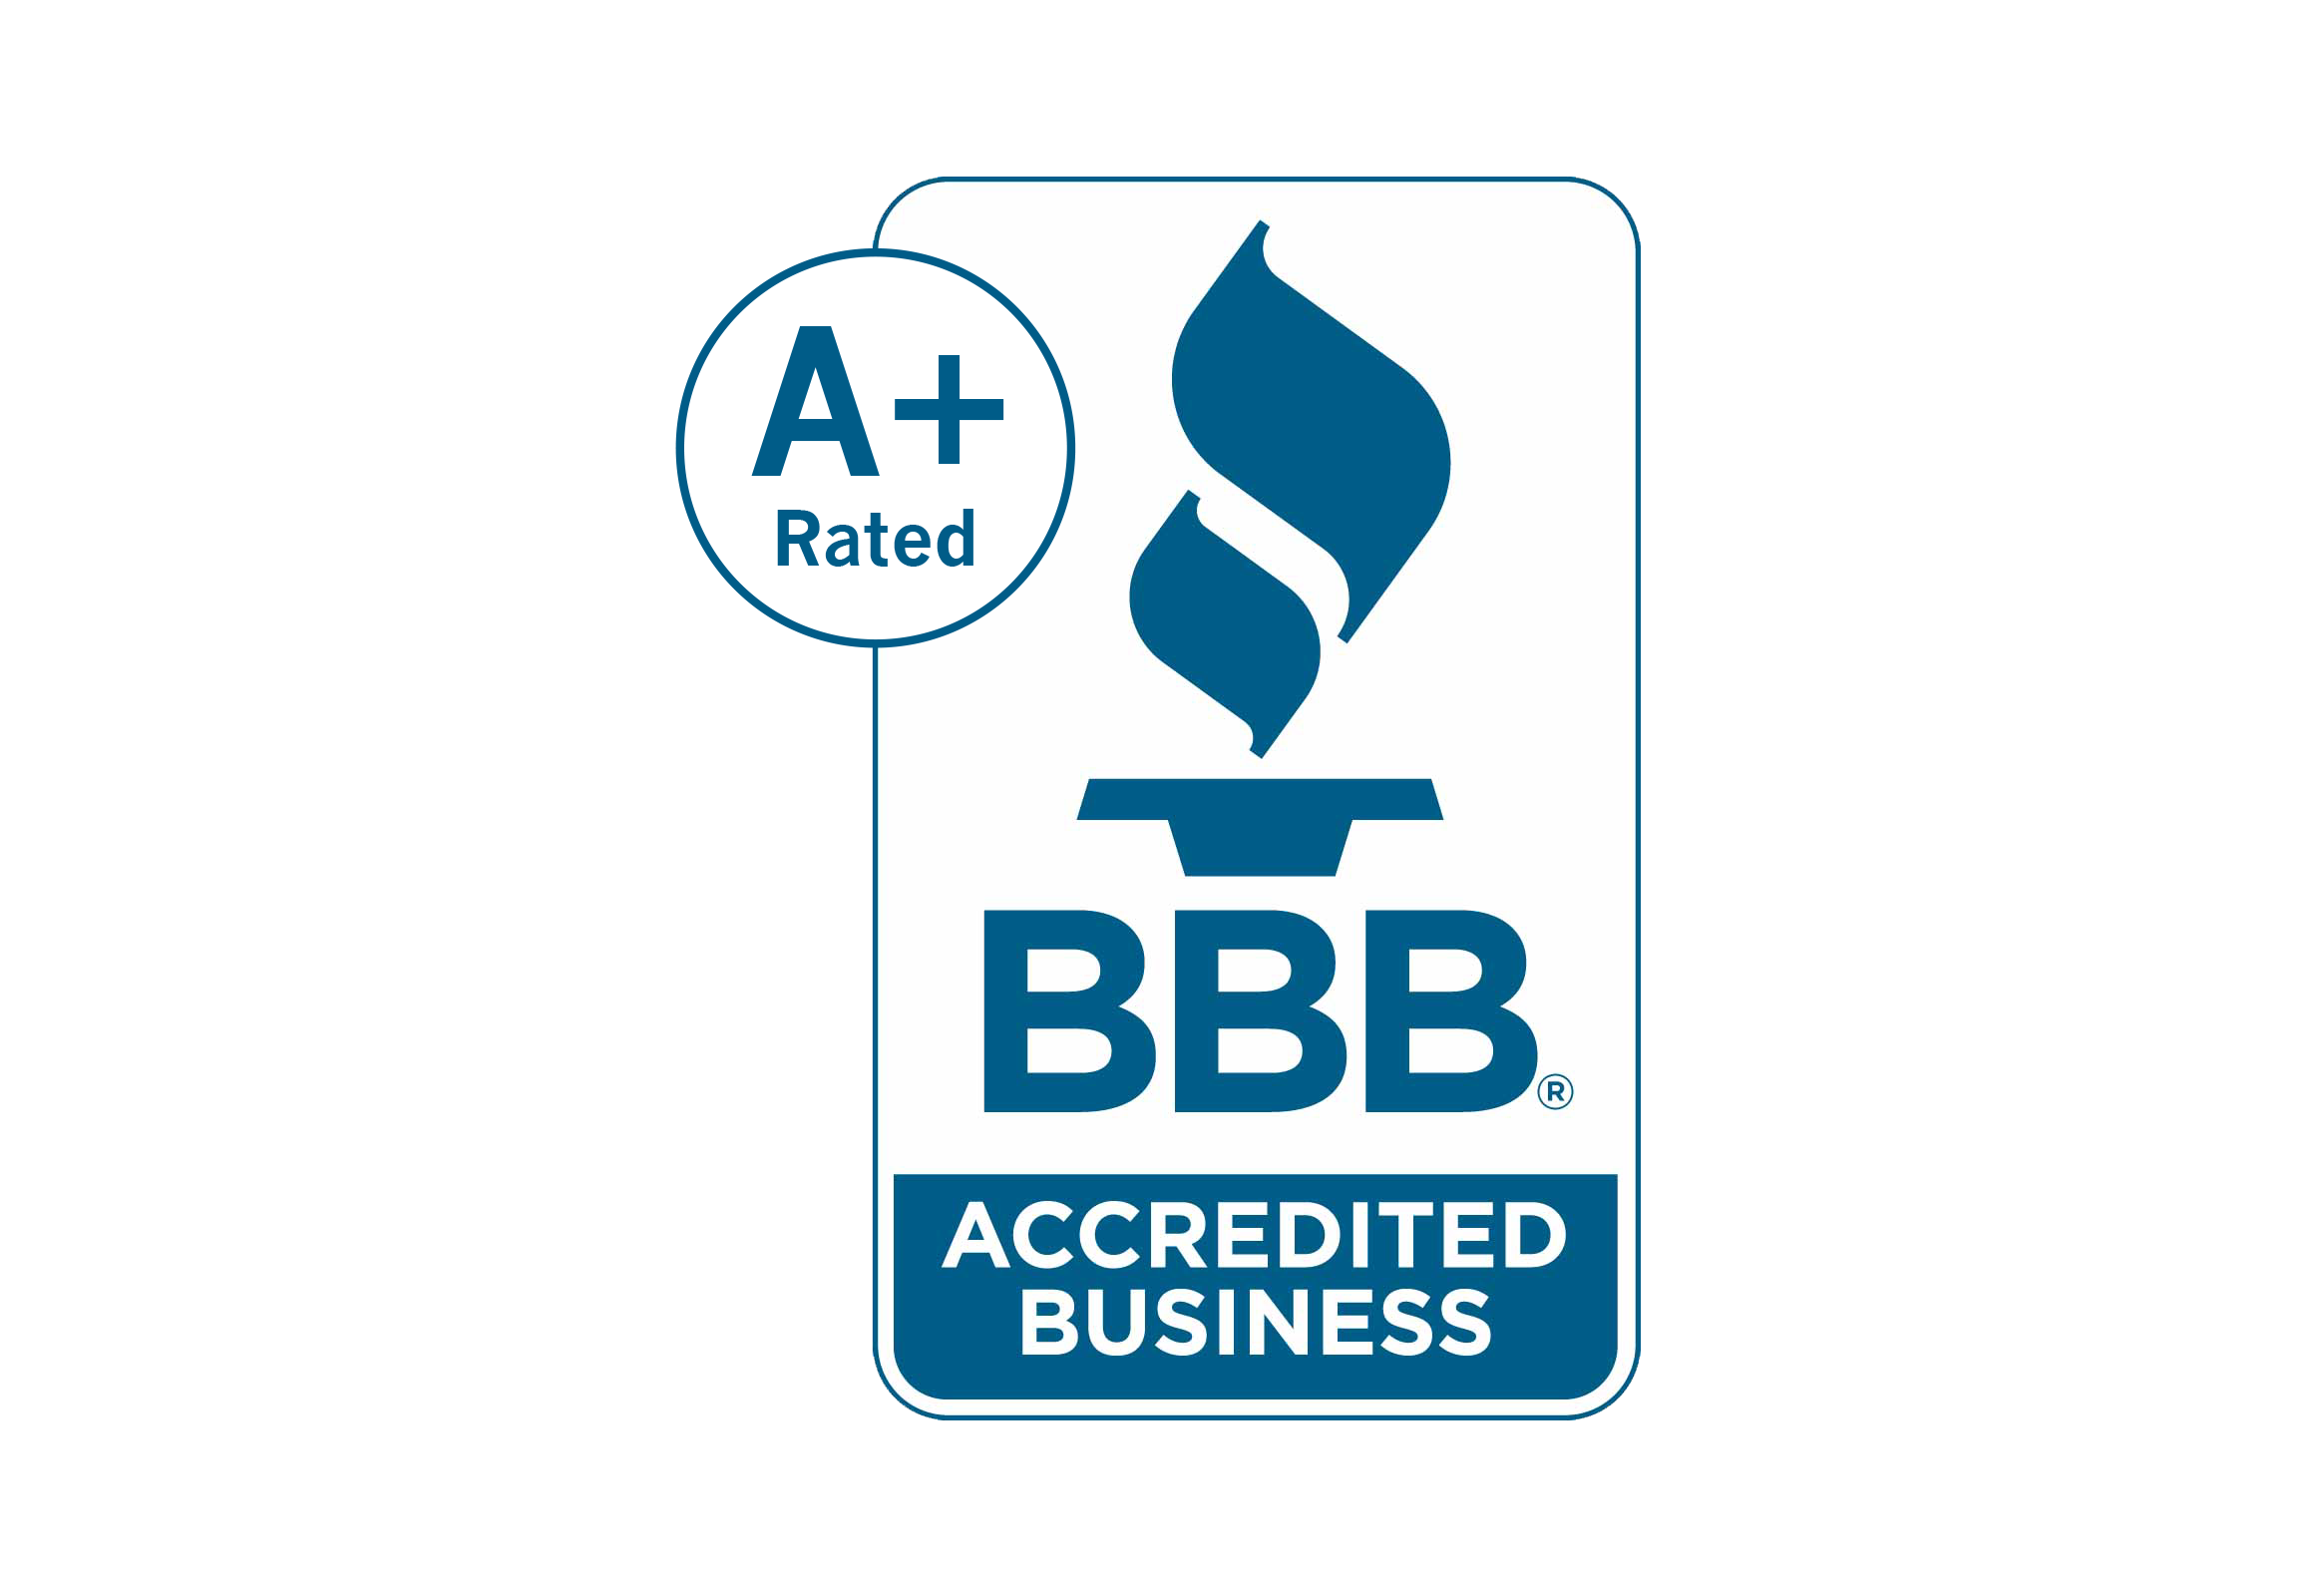 A+ Rating - Accredited Business of the BBB